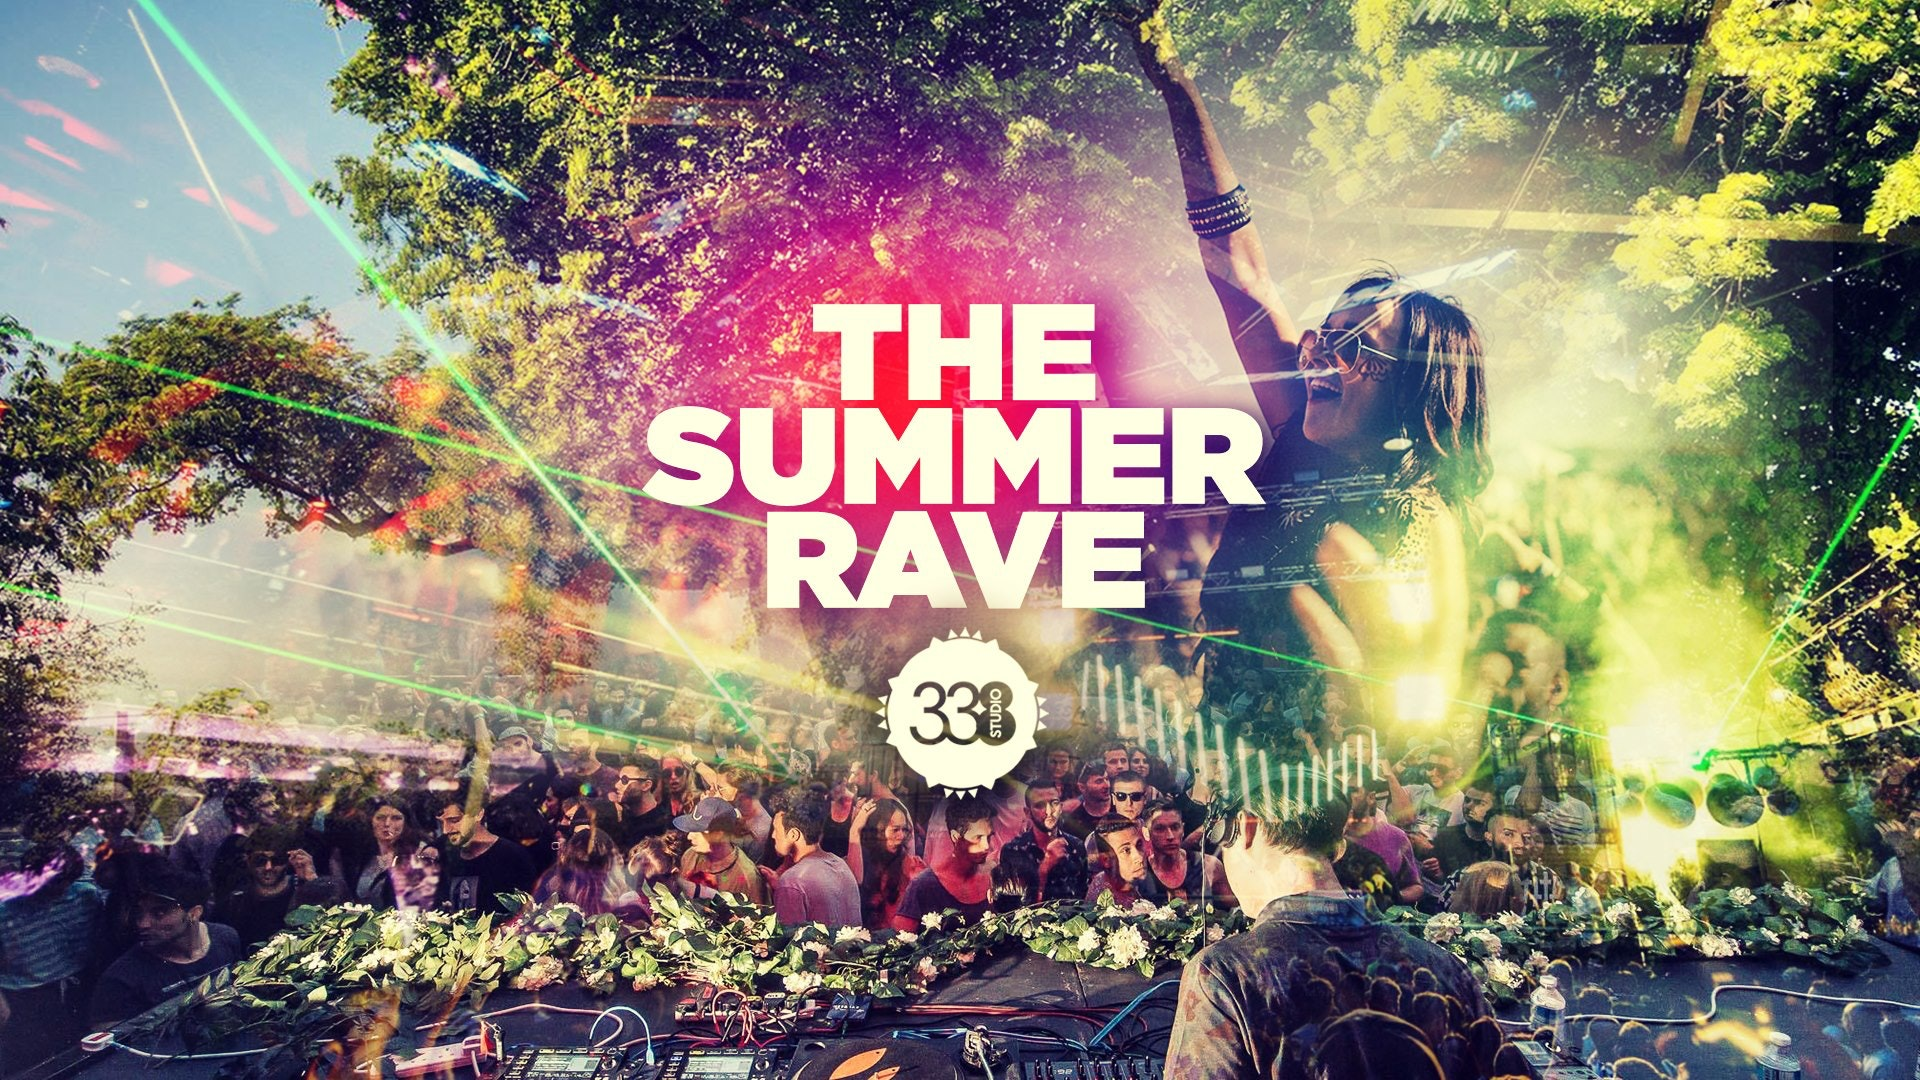 The Summer Rave 2019 at Studio 338 – Tonight 10pm ☀️